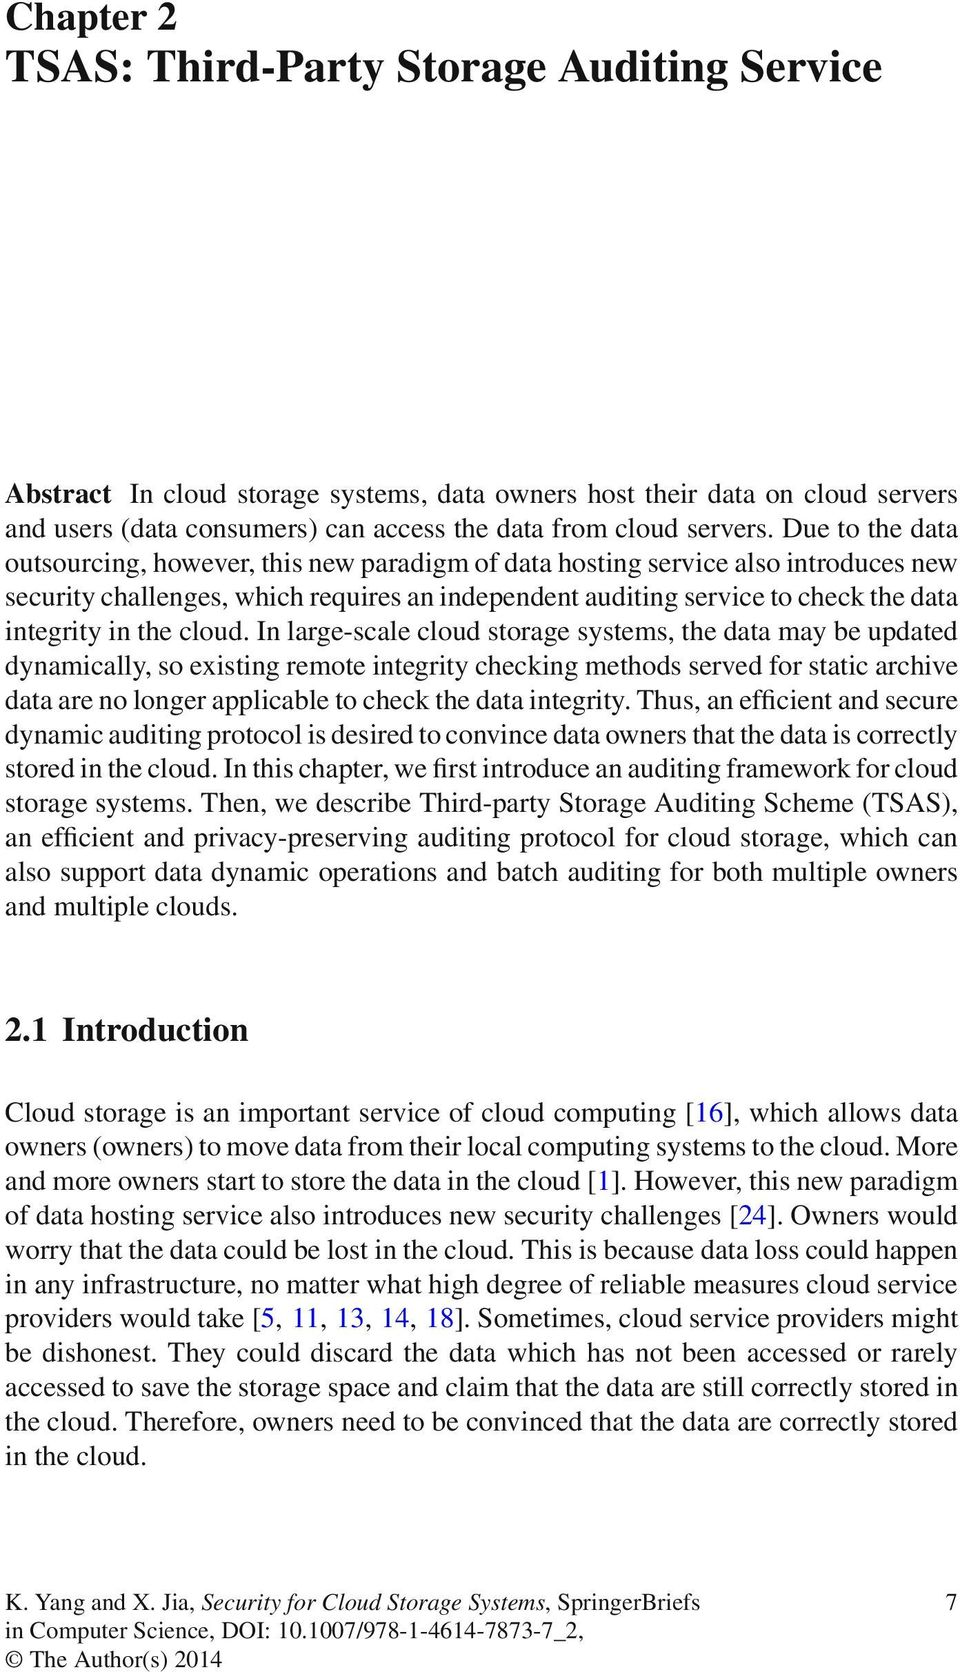 the cloud In large-scale cloud storage systems, the data may be updated dynamically, so existing remote integrity checking methods served for static archive data are no longer applicable to check the